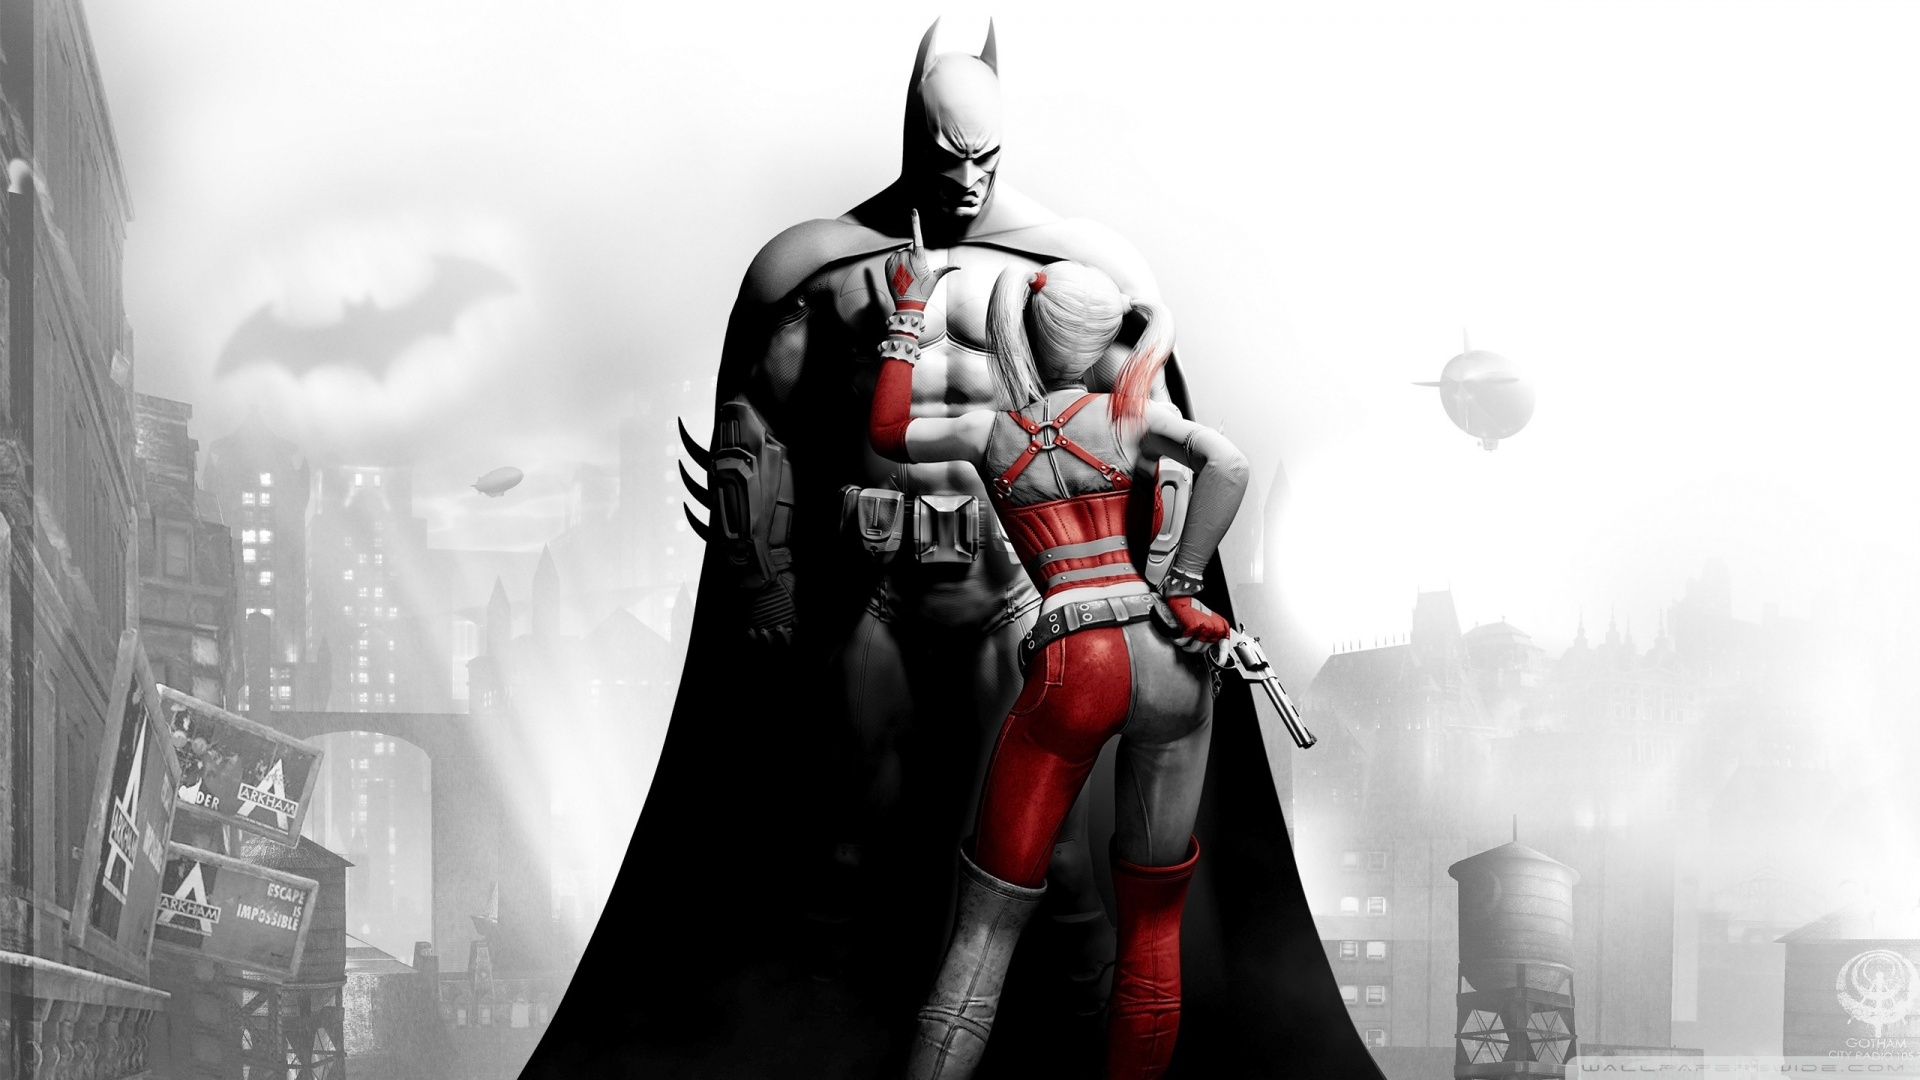 52g_batman_arkham_city_harley_quinn-wallpaper-1920x1080